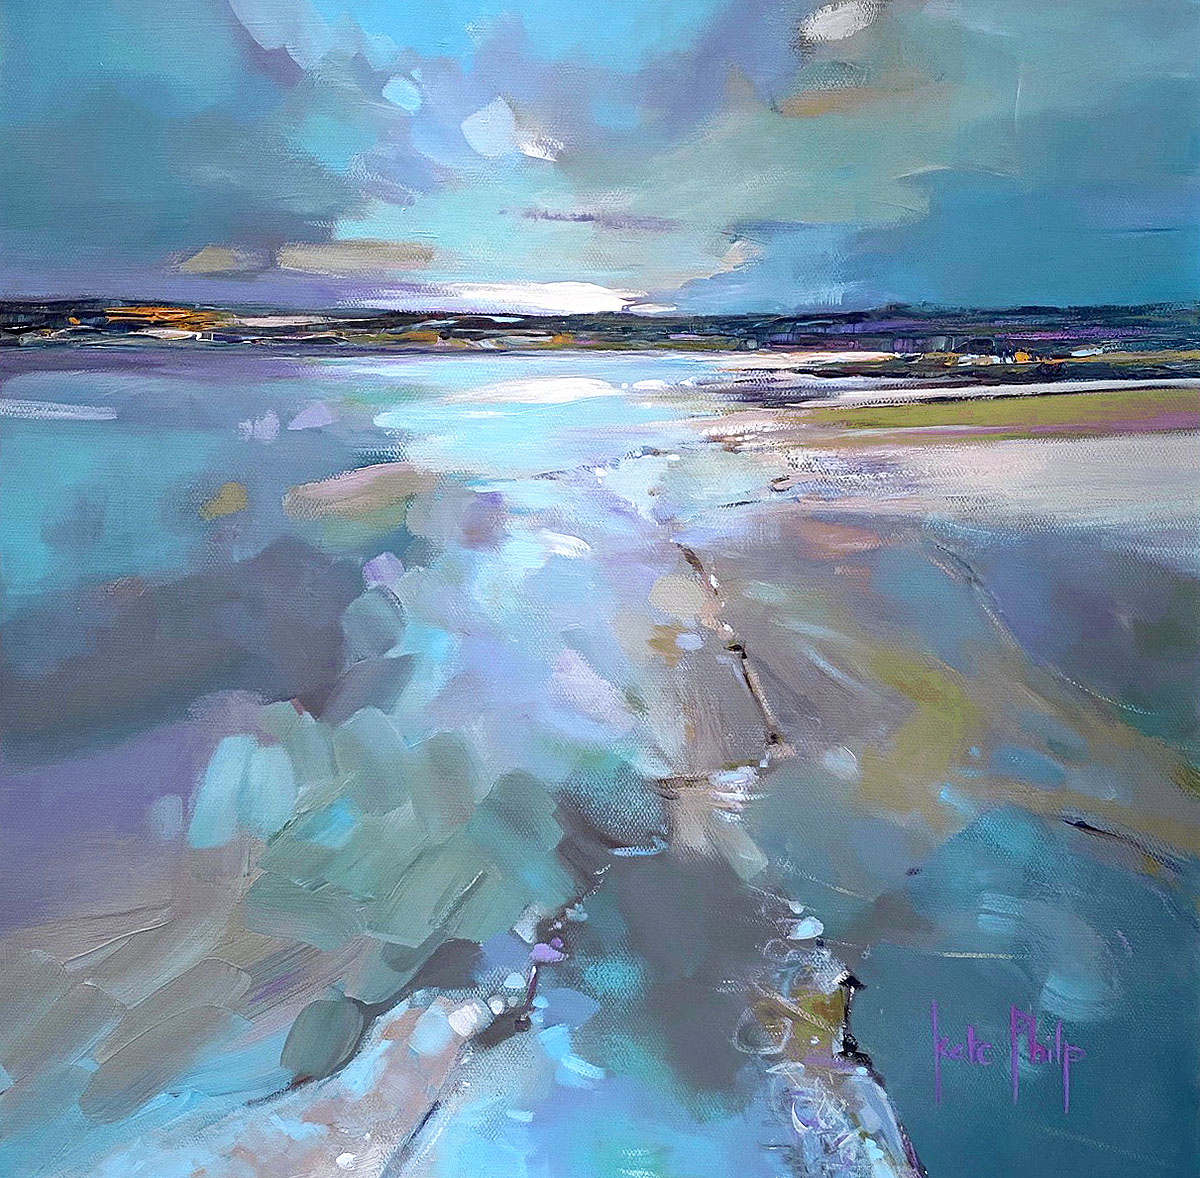 Kate Philp, 'All is Calm, All is Bright, Tentsmuir', acrylic